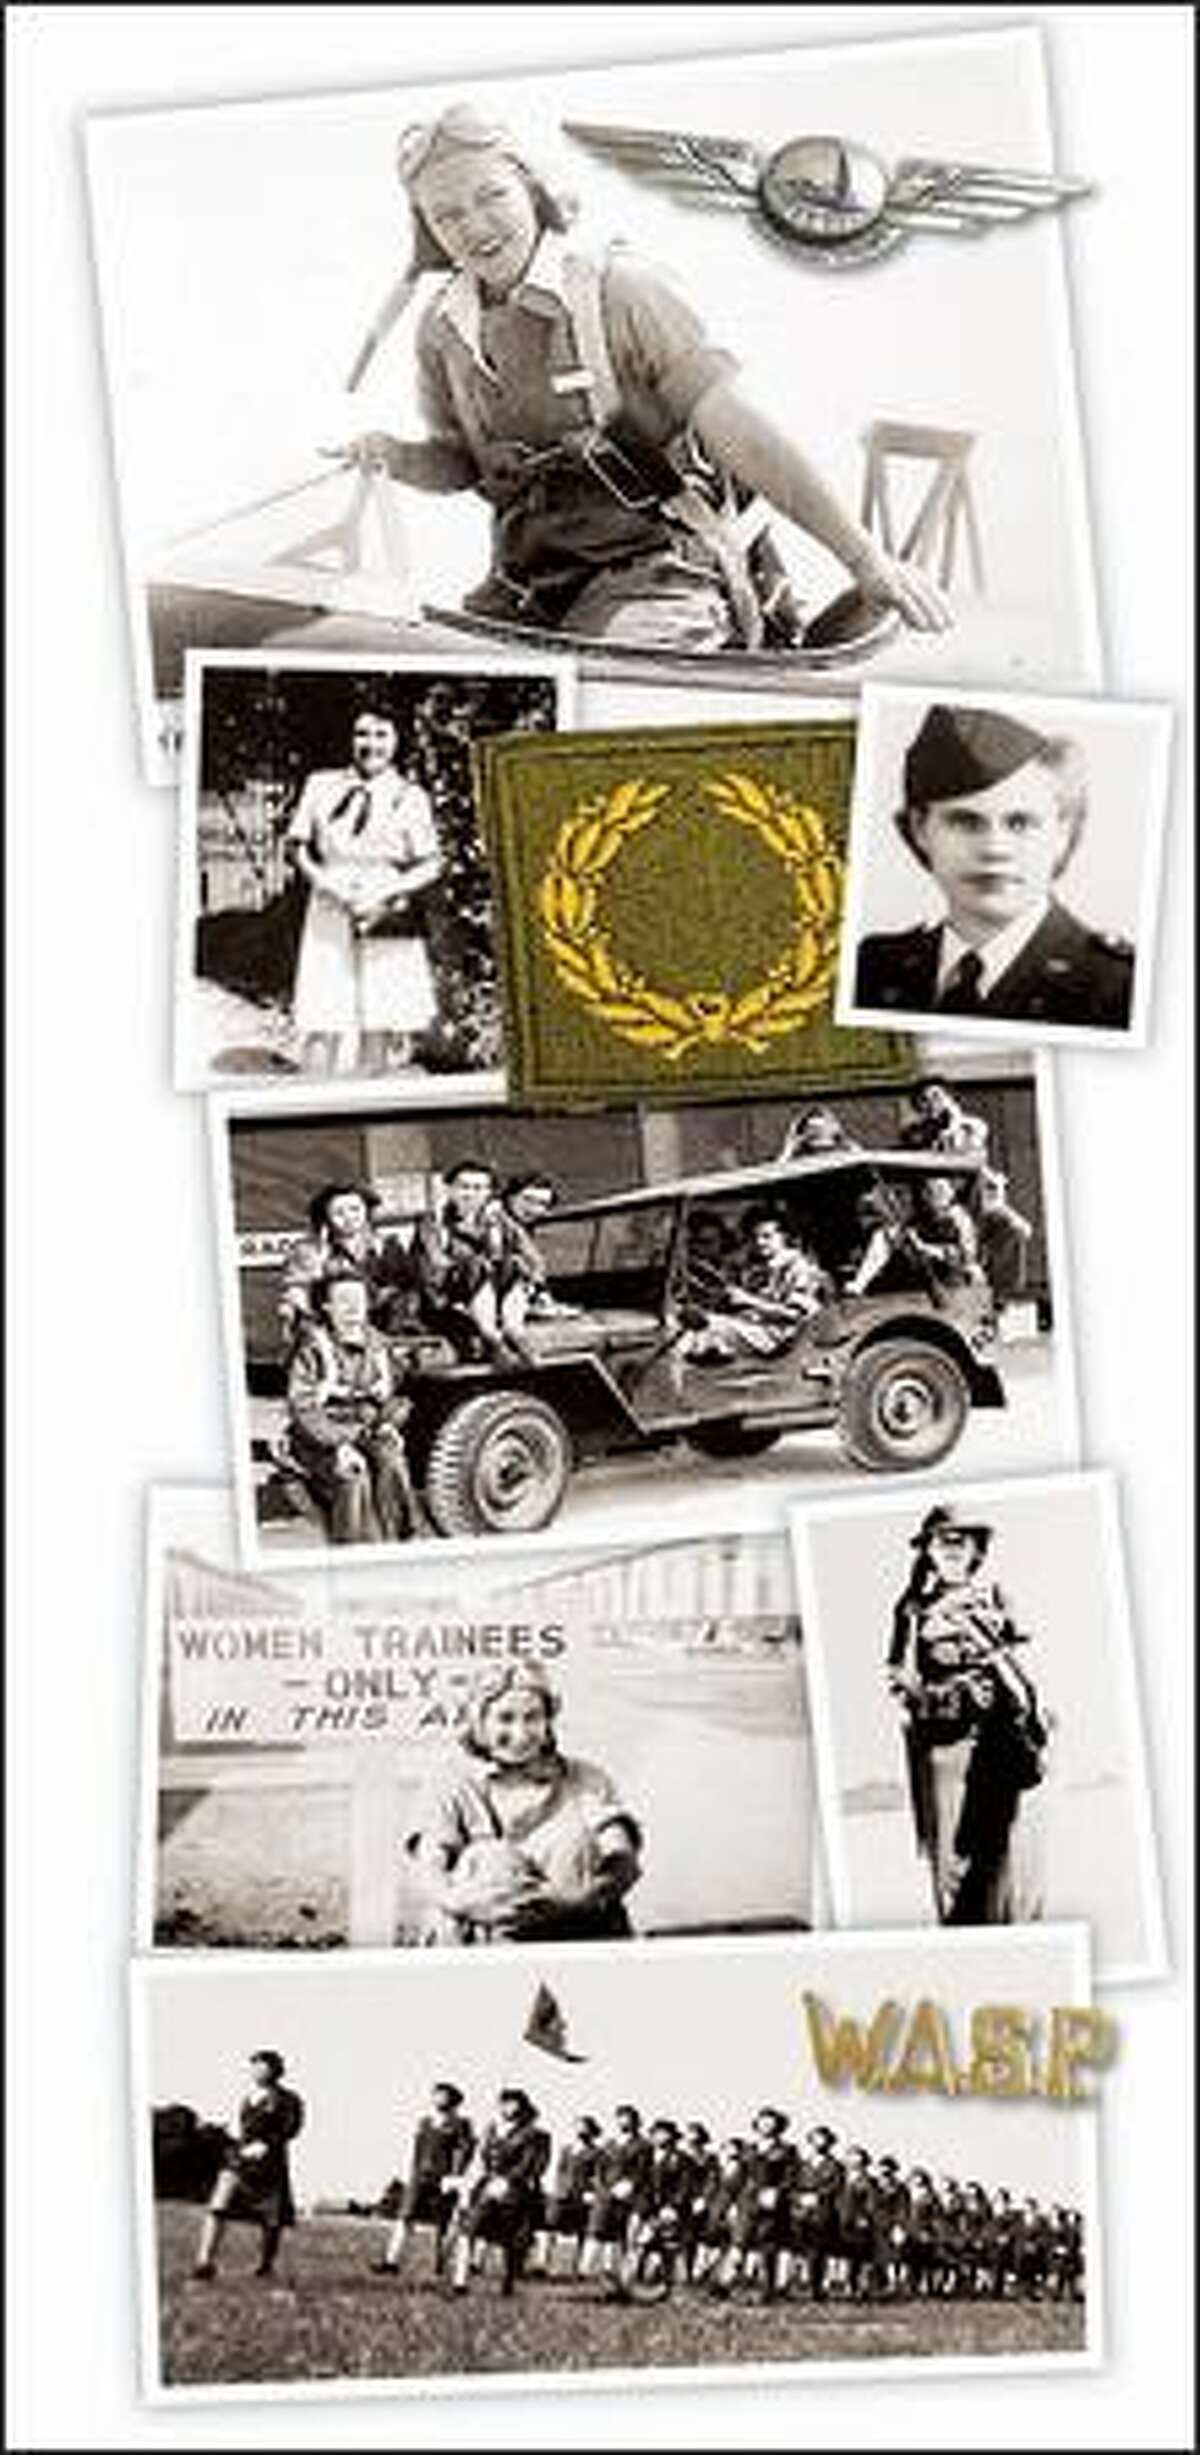 They set rivets, flew military planes, faced capture and ultimately changed the American way of life when they served the war effort. In a new documentary, Washington women share their personal stories of World War II. (Courtesy of Bristol Productions)